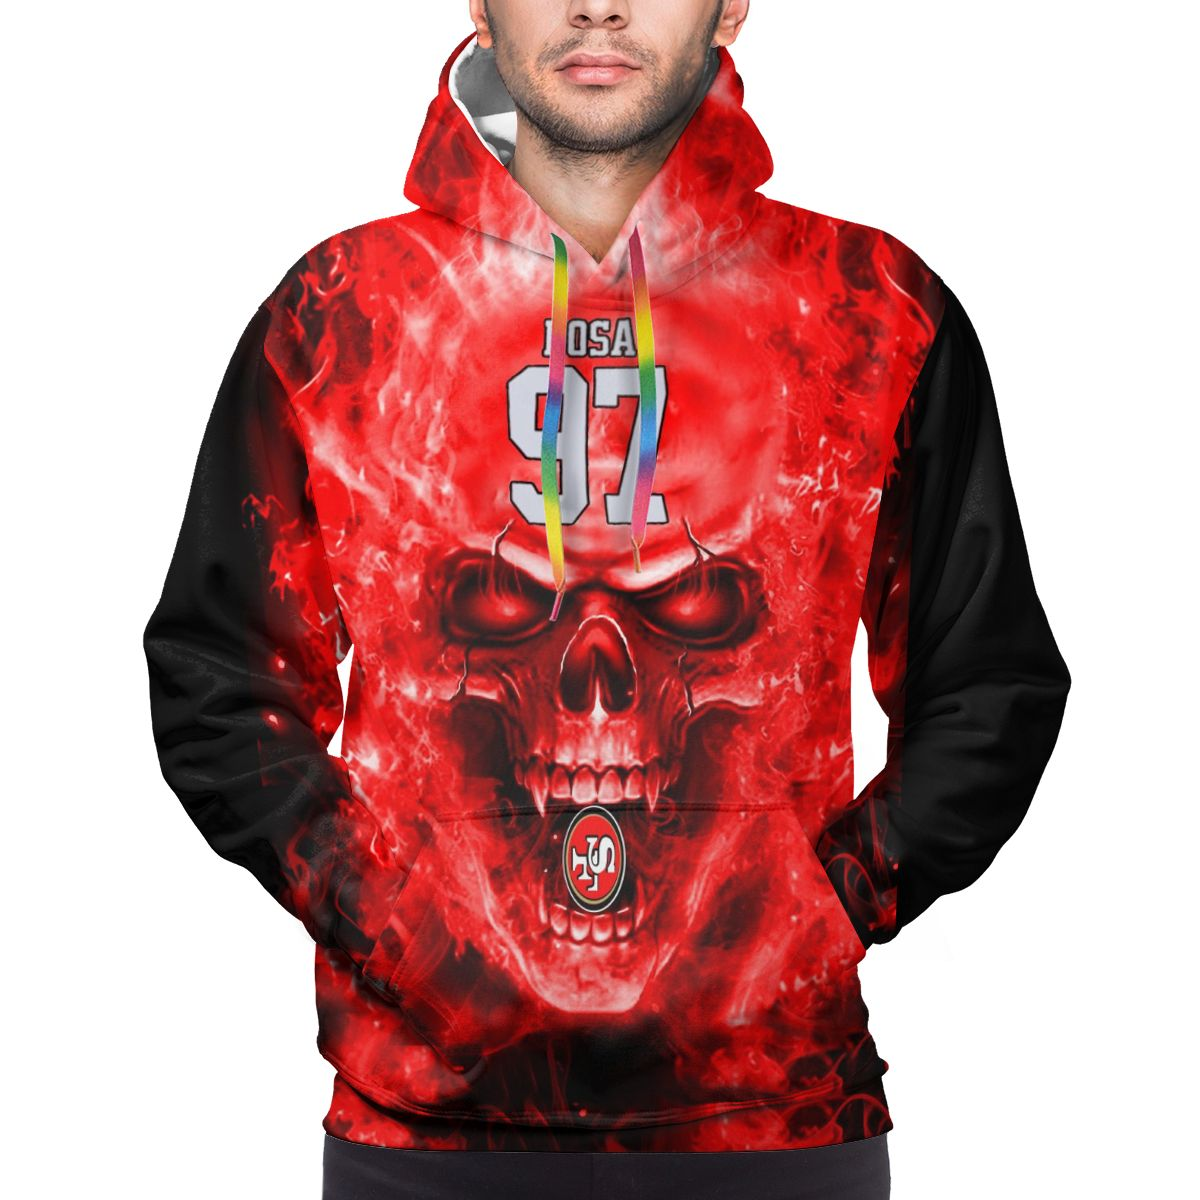 3D Skull 49ers #97 Nick Bosa Logo Print Hoodies For Men Pullover Sweatshirt